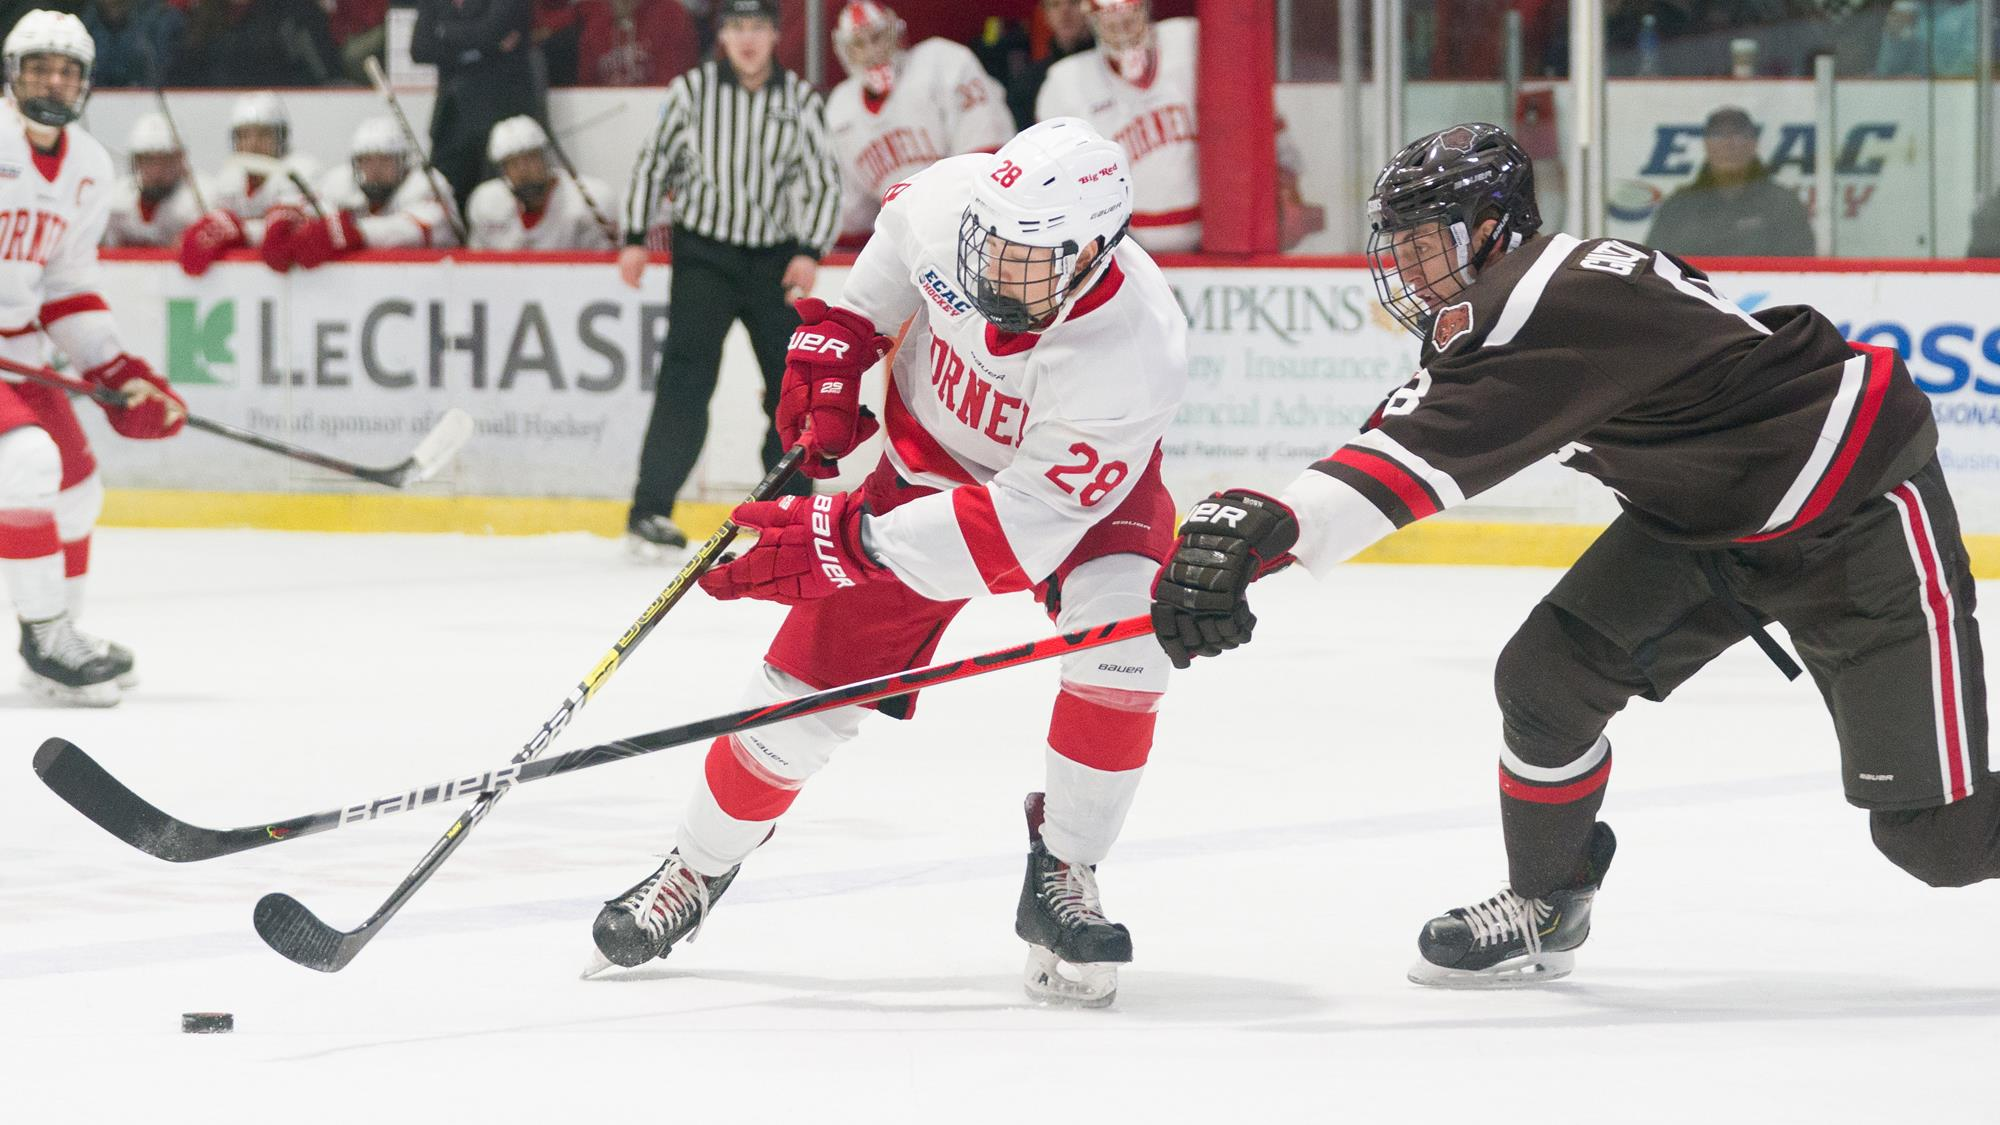 Brenden Locke protects the puck during the Cornell men's hockey team's 4-1 victory over Brown in an ECAC Hockey and Ivy League game on Nov. 8, 2019 at Lynah Rink in Ithaca, N.Y. (Dave Burbank/Cornell Athletics)